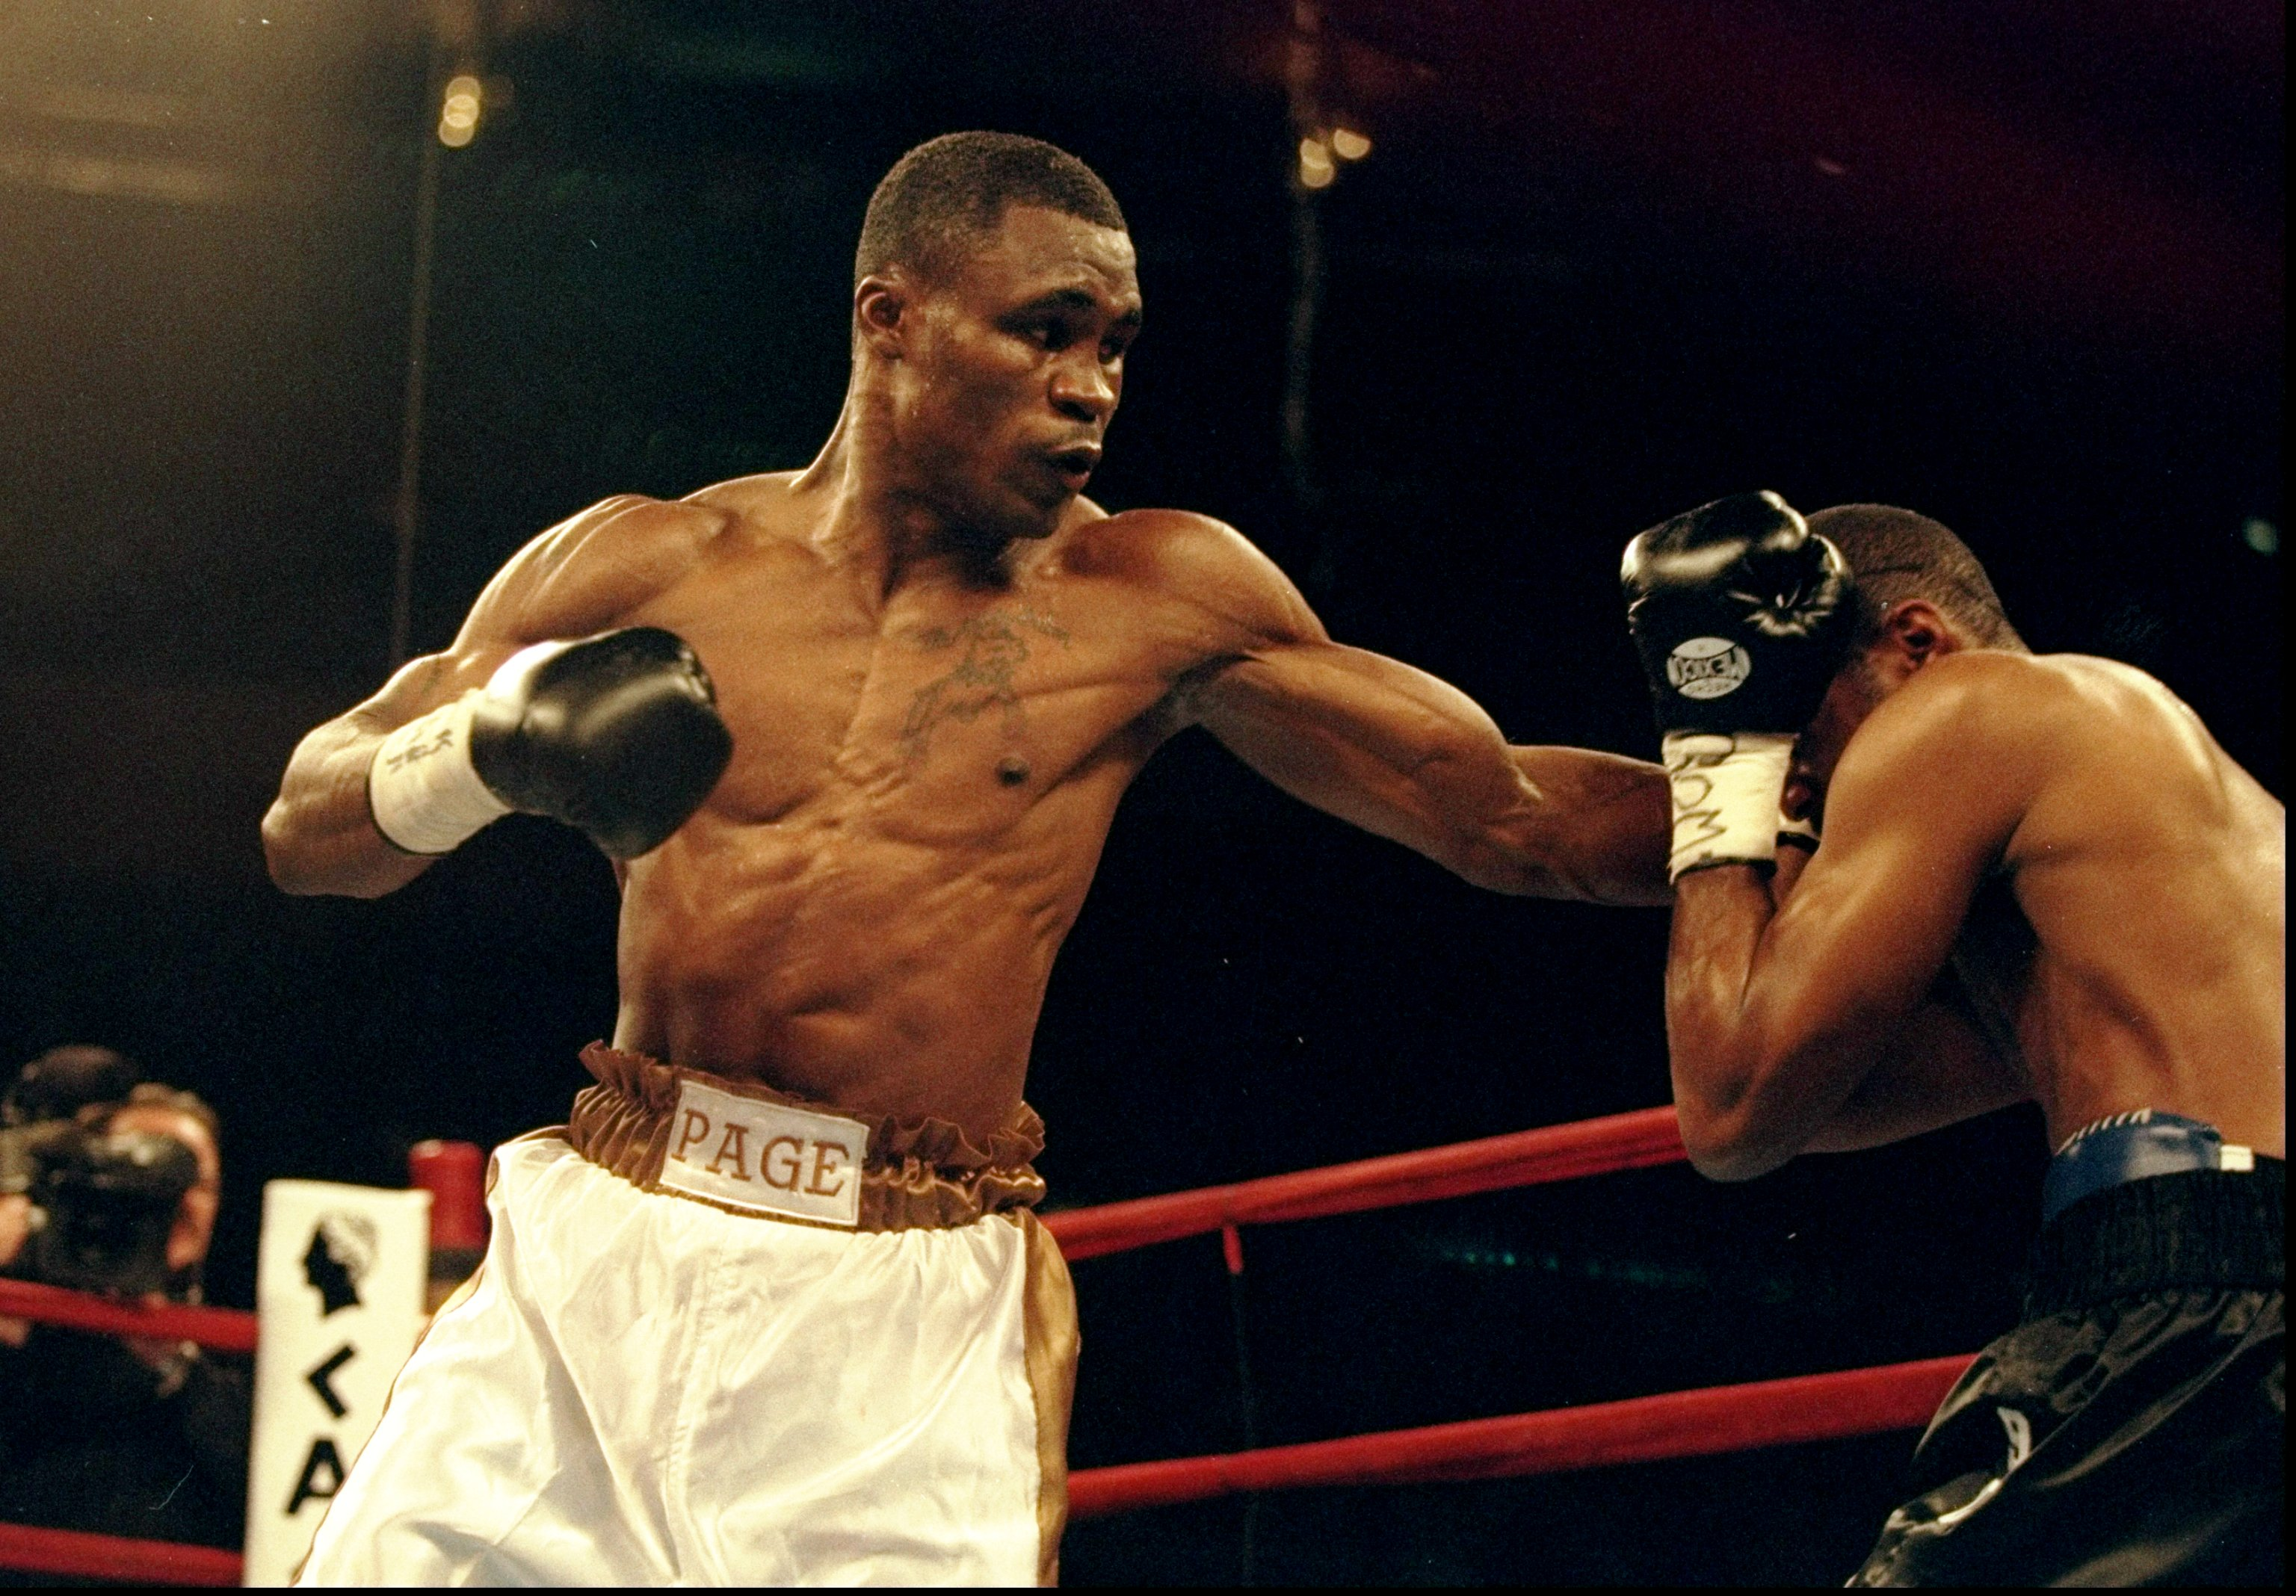 James Page, left, in a 1999 welterweight bout against Sam Garr. (Al Bello/Getty Images)